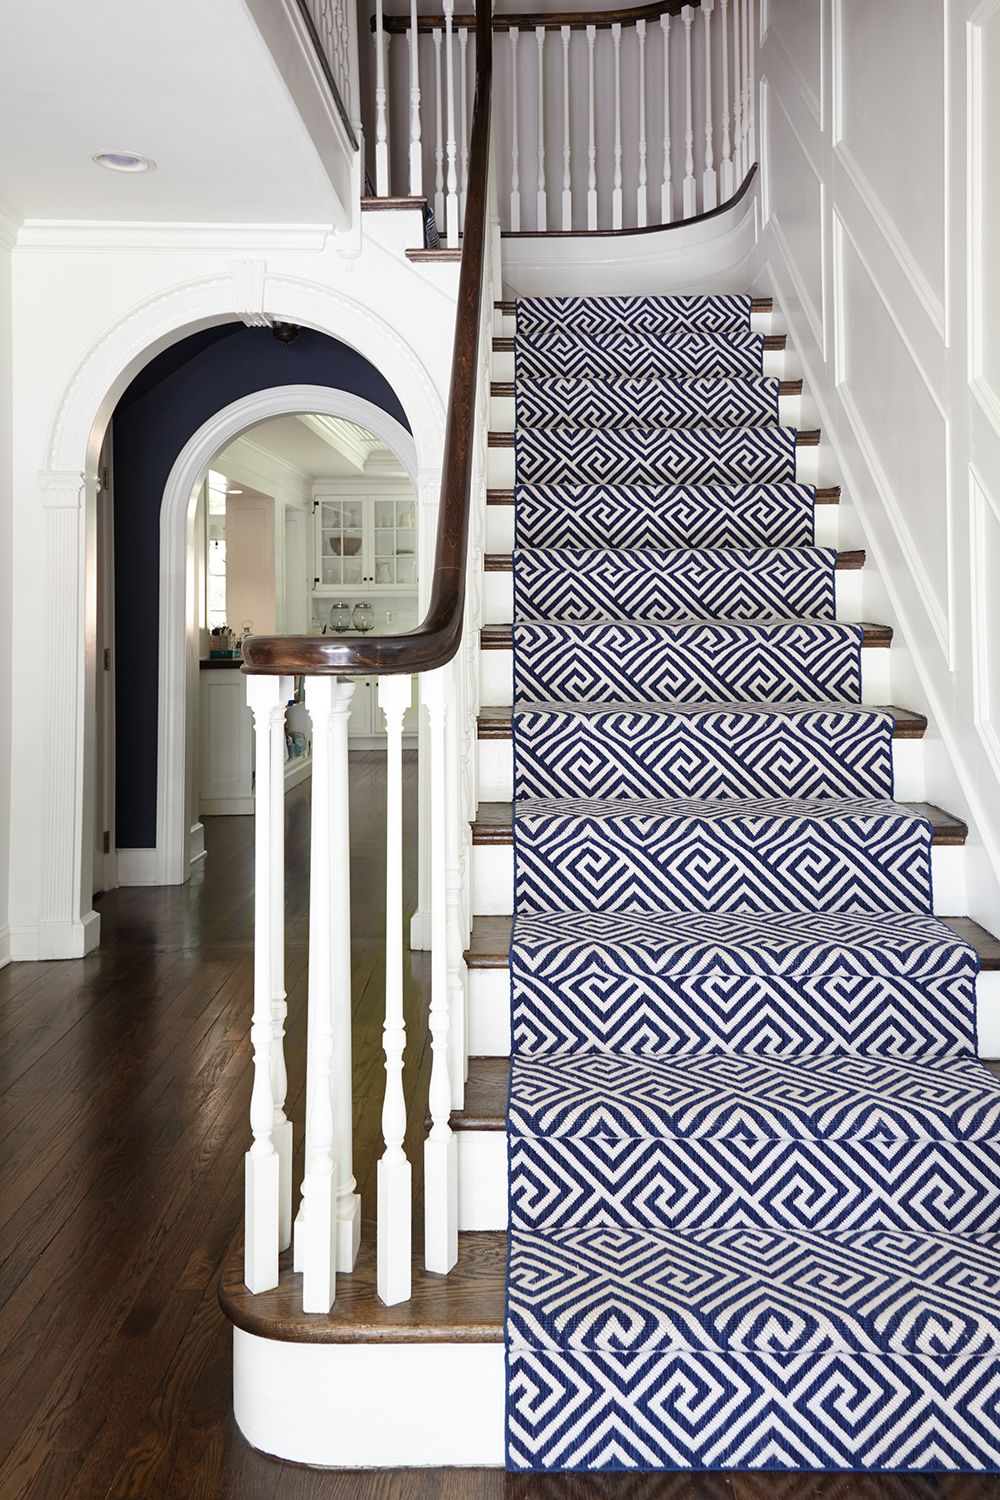 Best Navy And White Geometric Runner By Stark Carpet For This 400 x 300